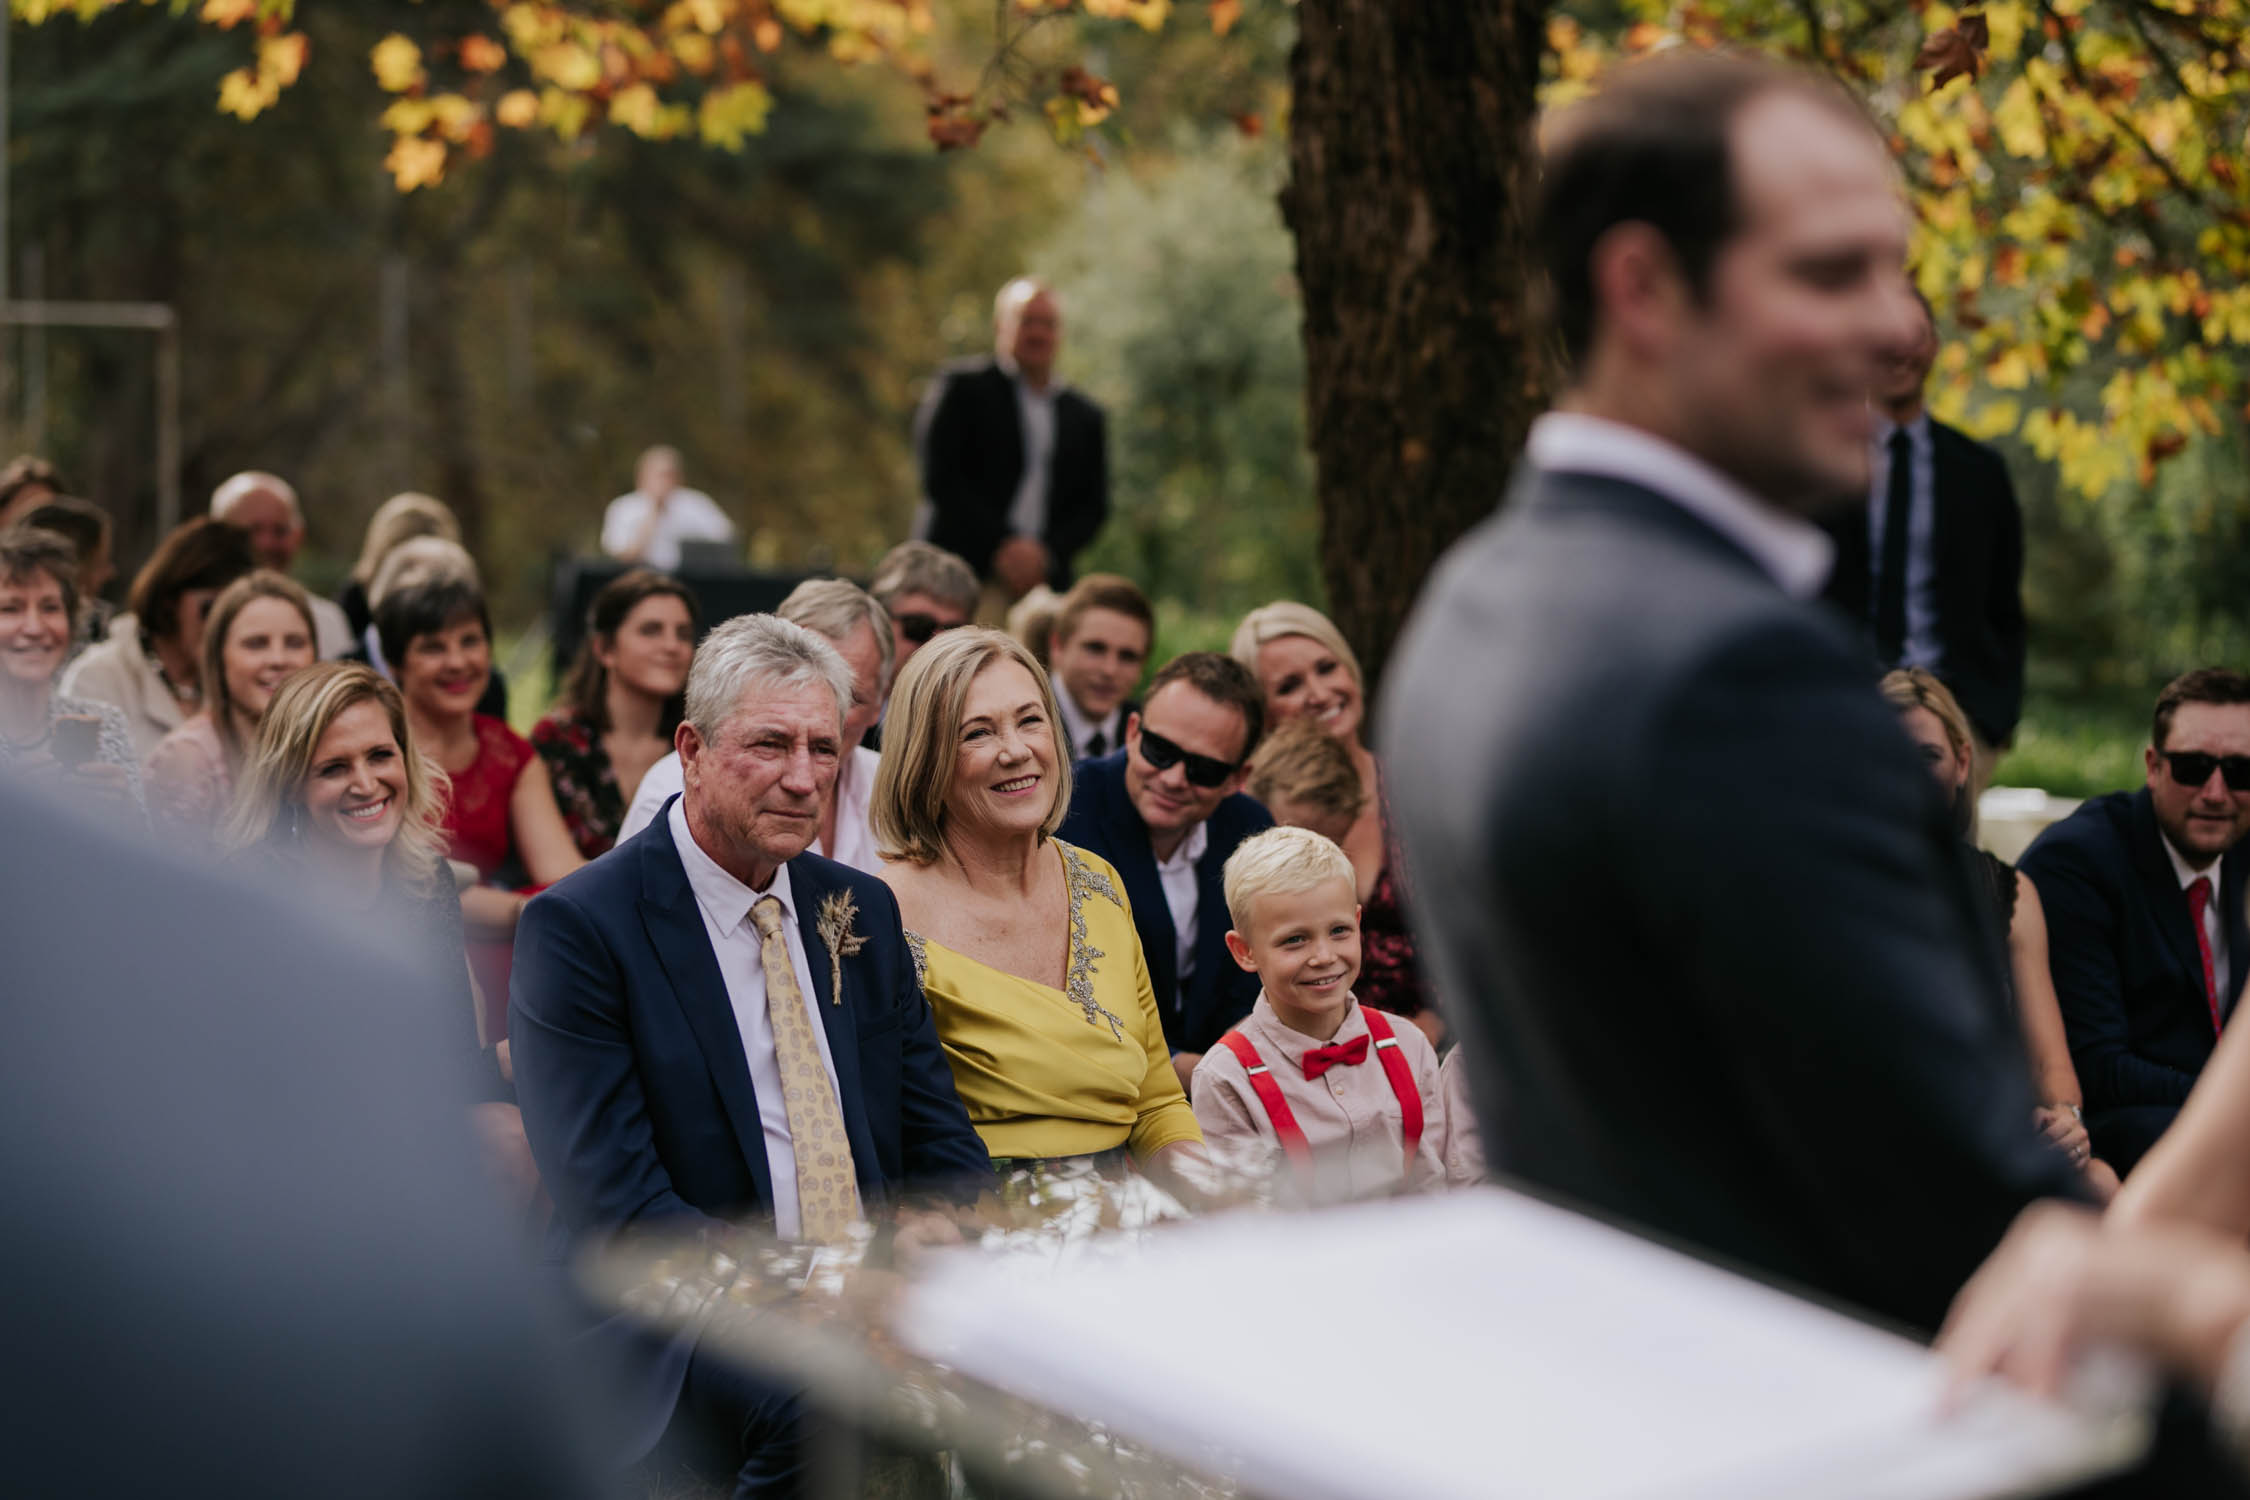 Bride's parents during ceremony watching their daughter get married. Emotional Wedding Photography. Candid moment.